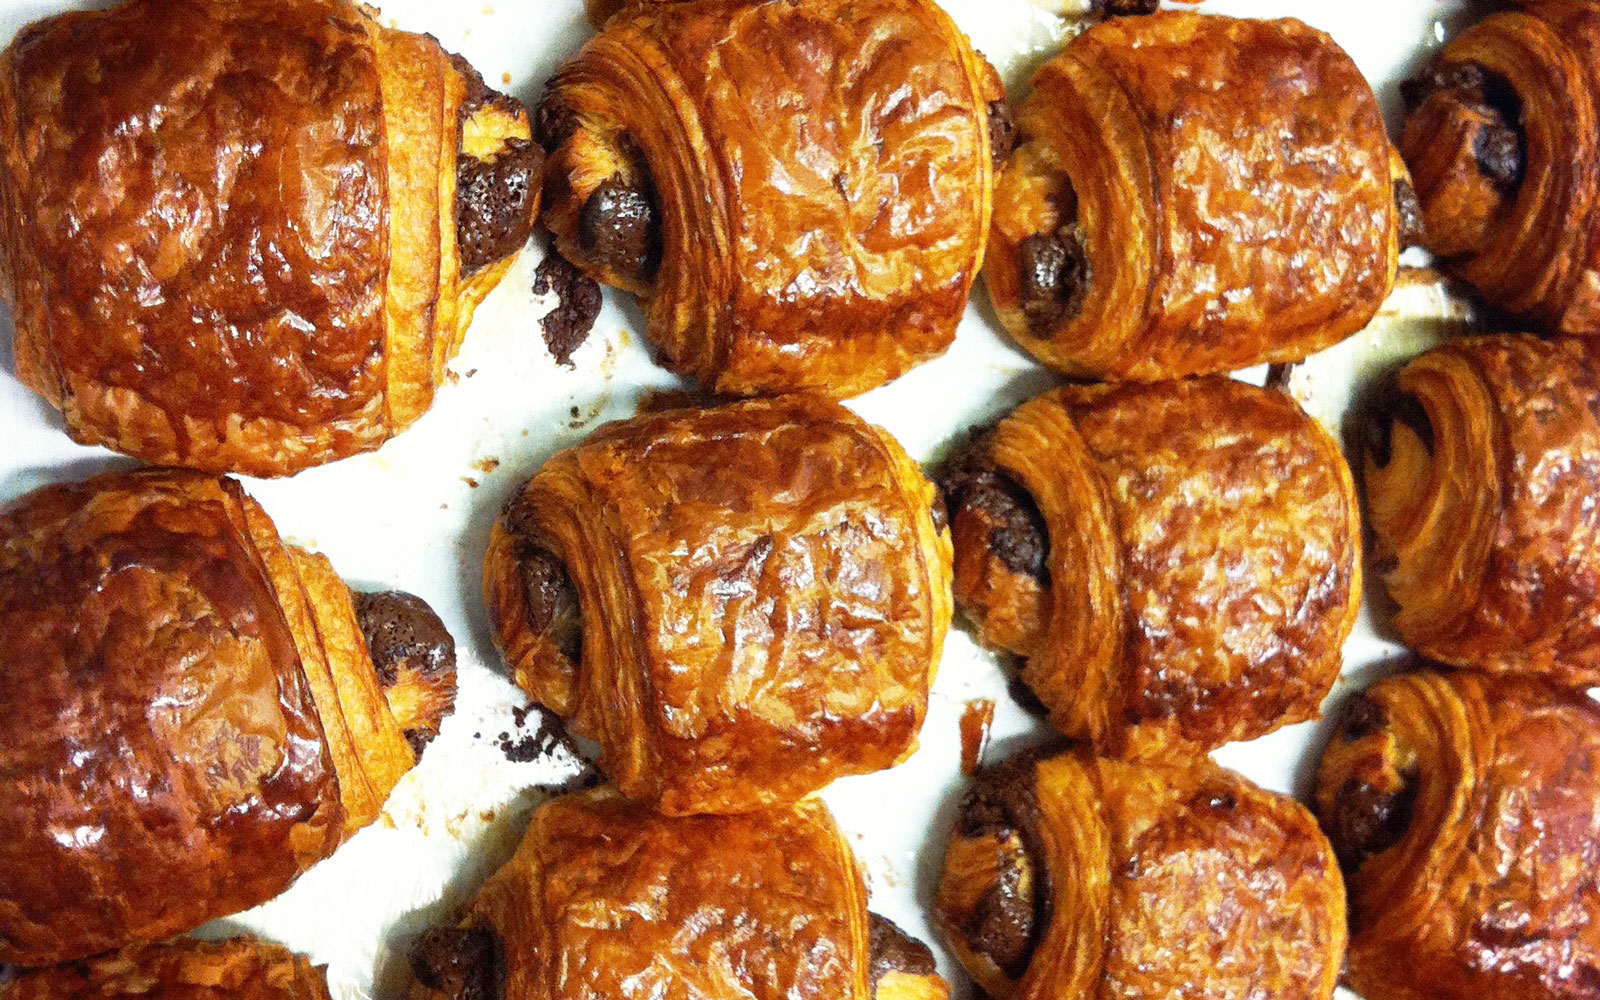 America's Best Bakeries